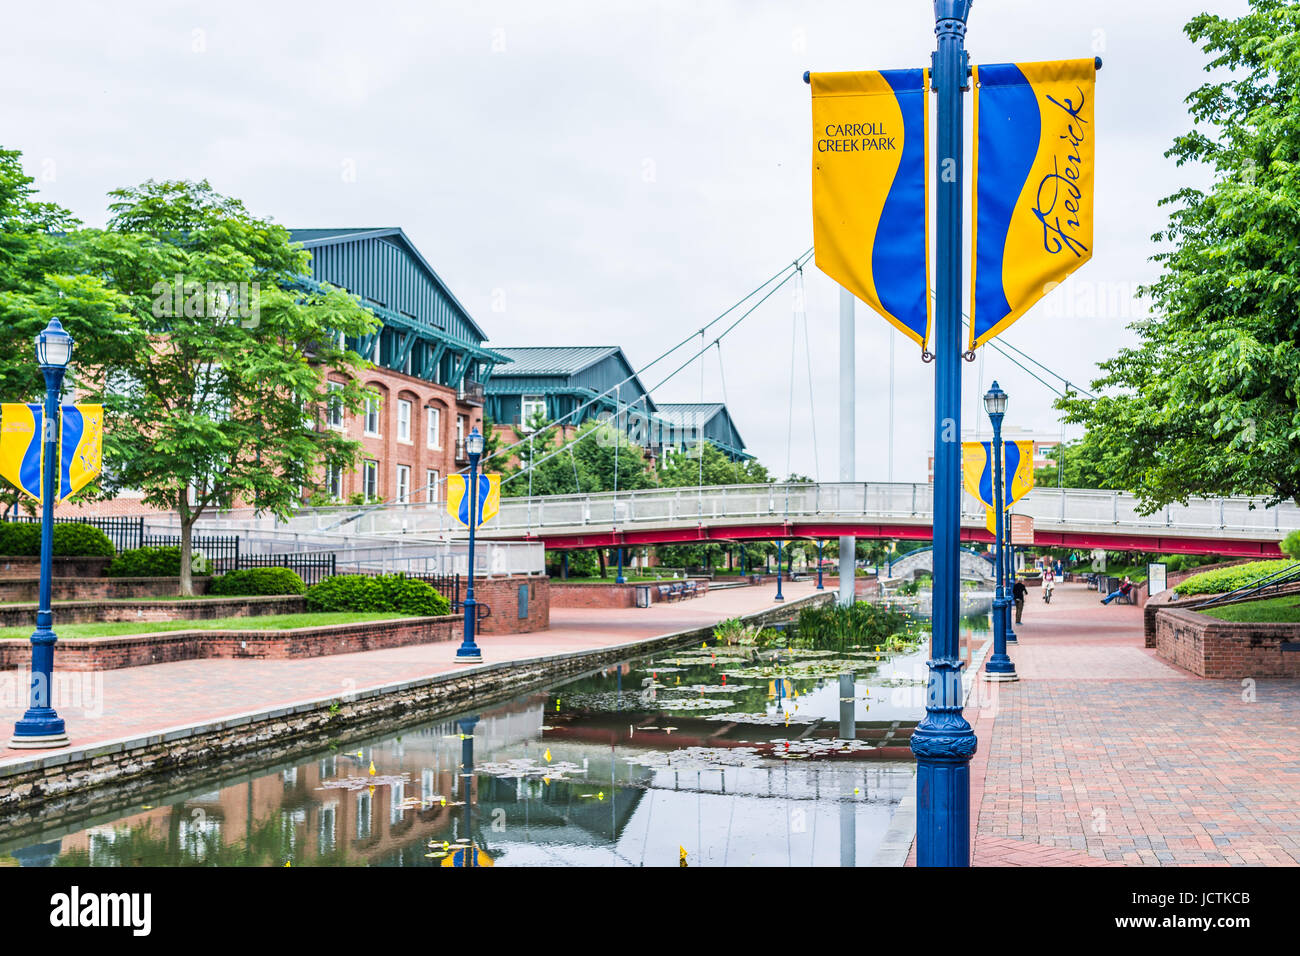 Frederick, USA - May 24, 2017: Carroll Creek in Maryland city park with canal, reflection and people walking by - Stock Image